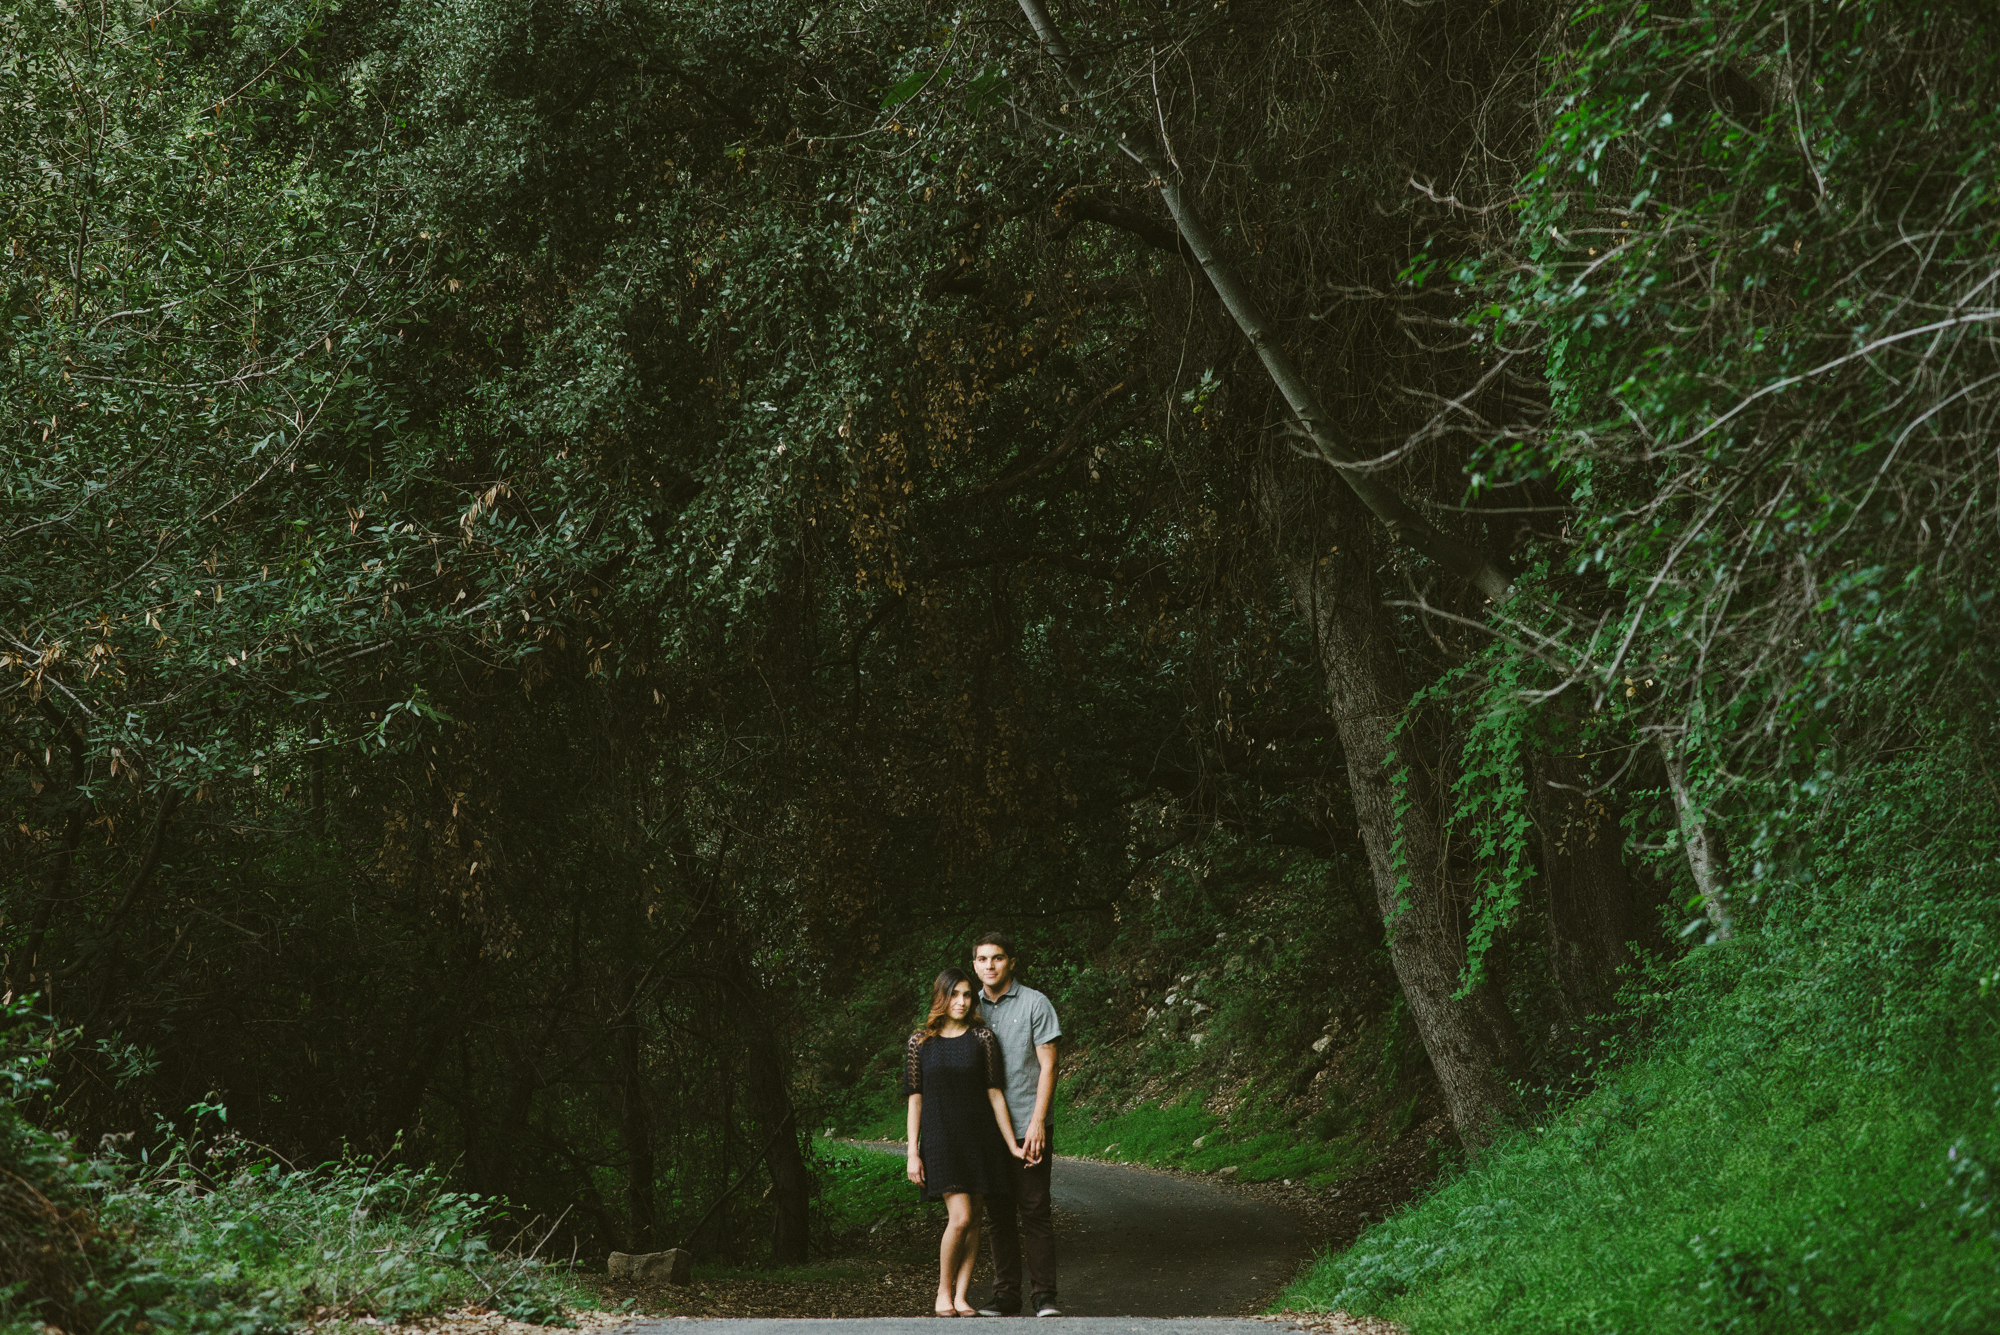 Isaiah & Taylor Photography - Los Angeles - Destination Wedding Photographers - Angeles National Forest Engagement-12.jpg